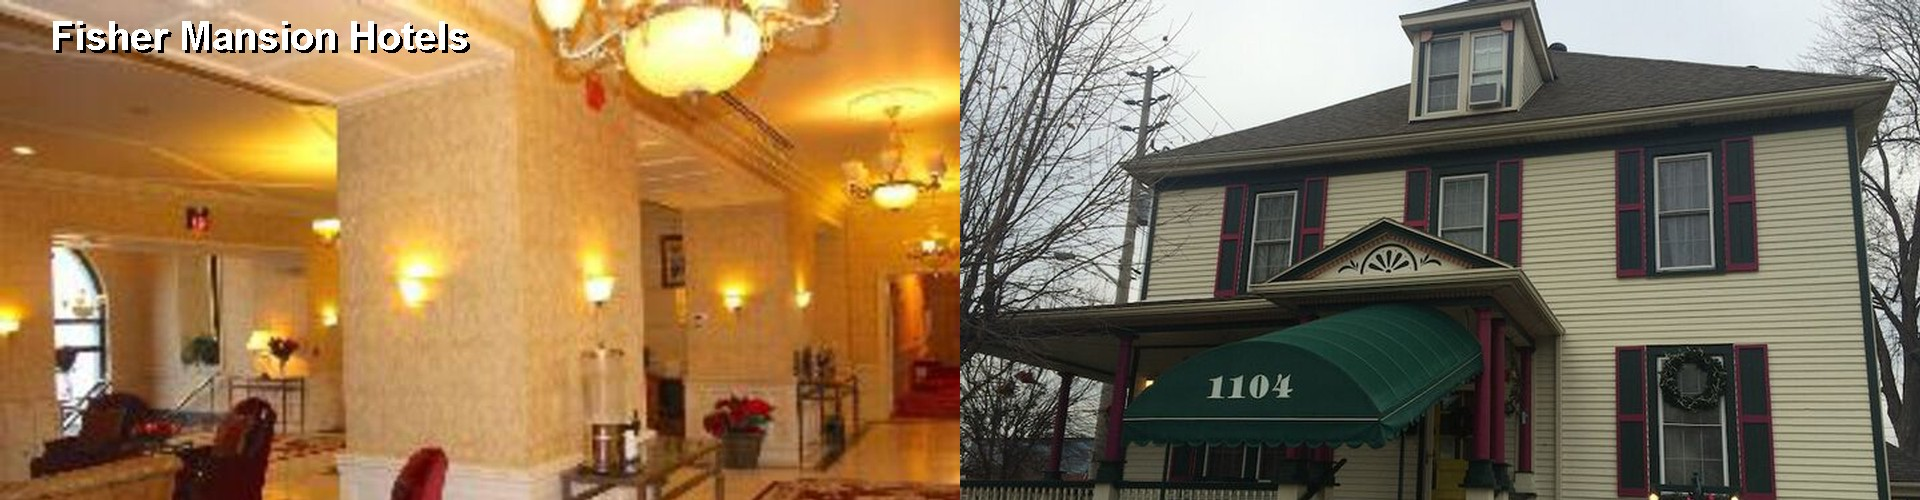 5 Best Hotels near Fisher Mansion